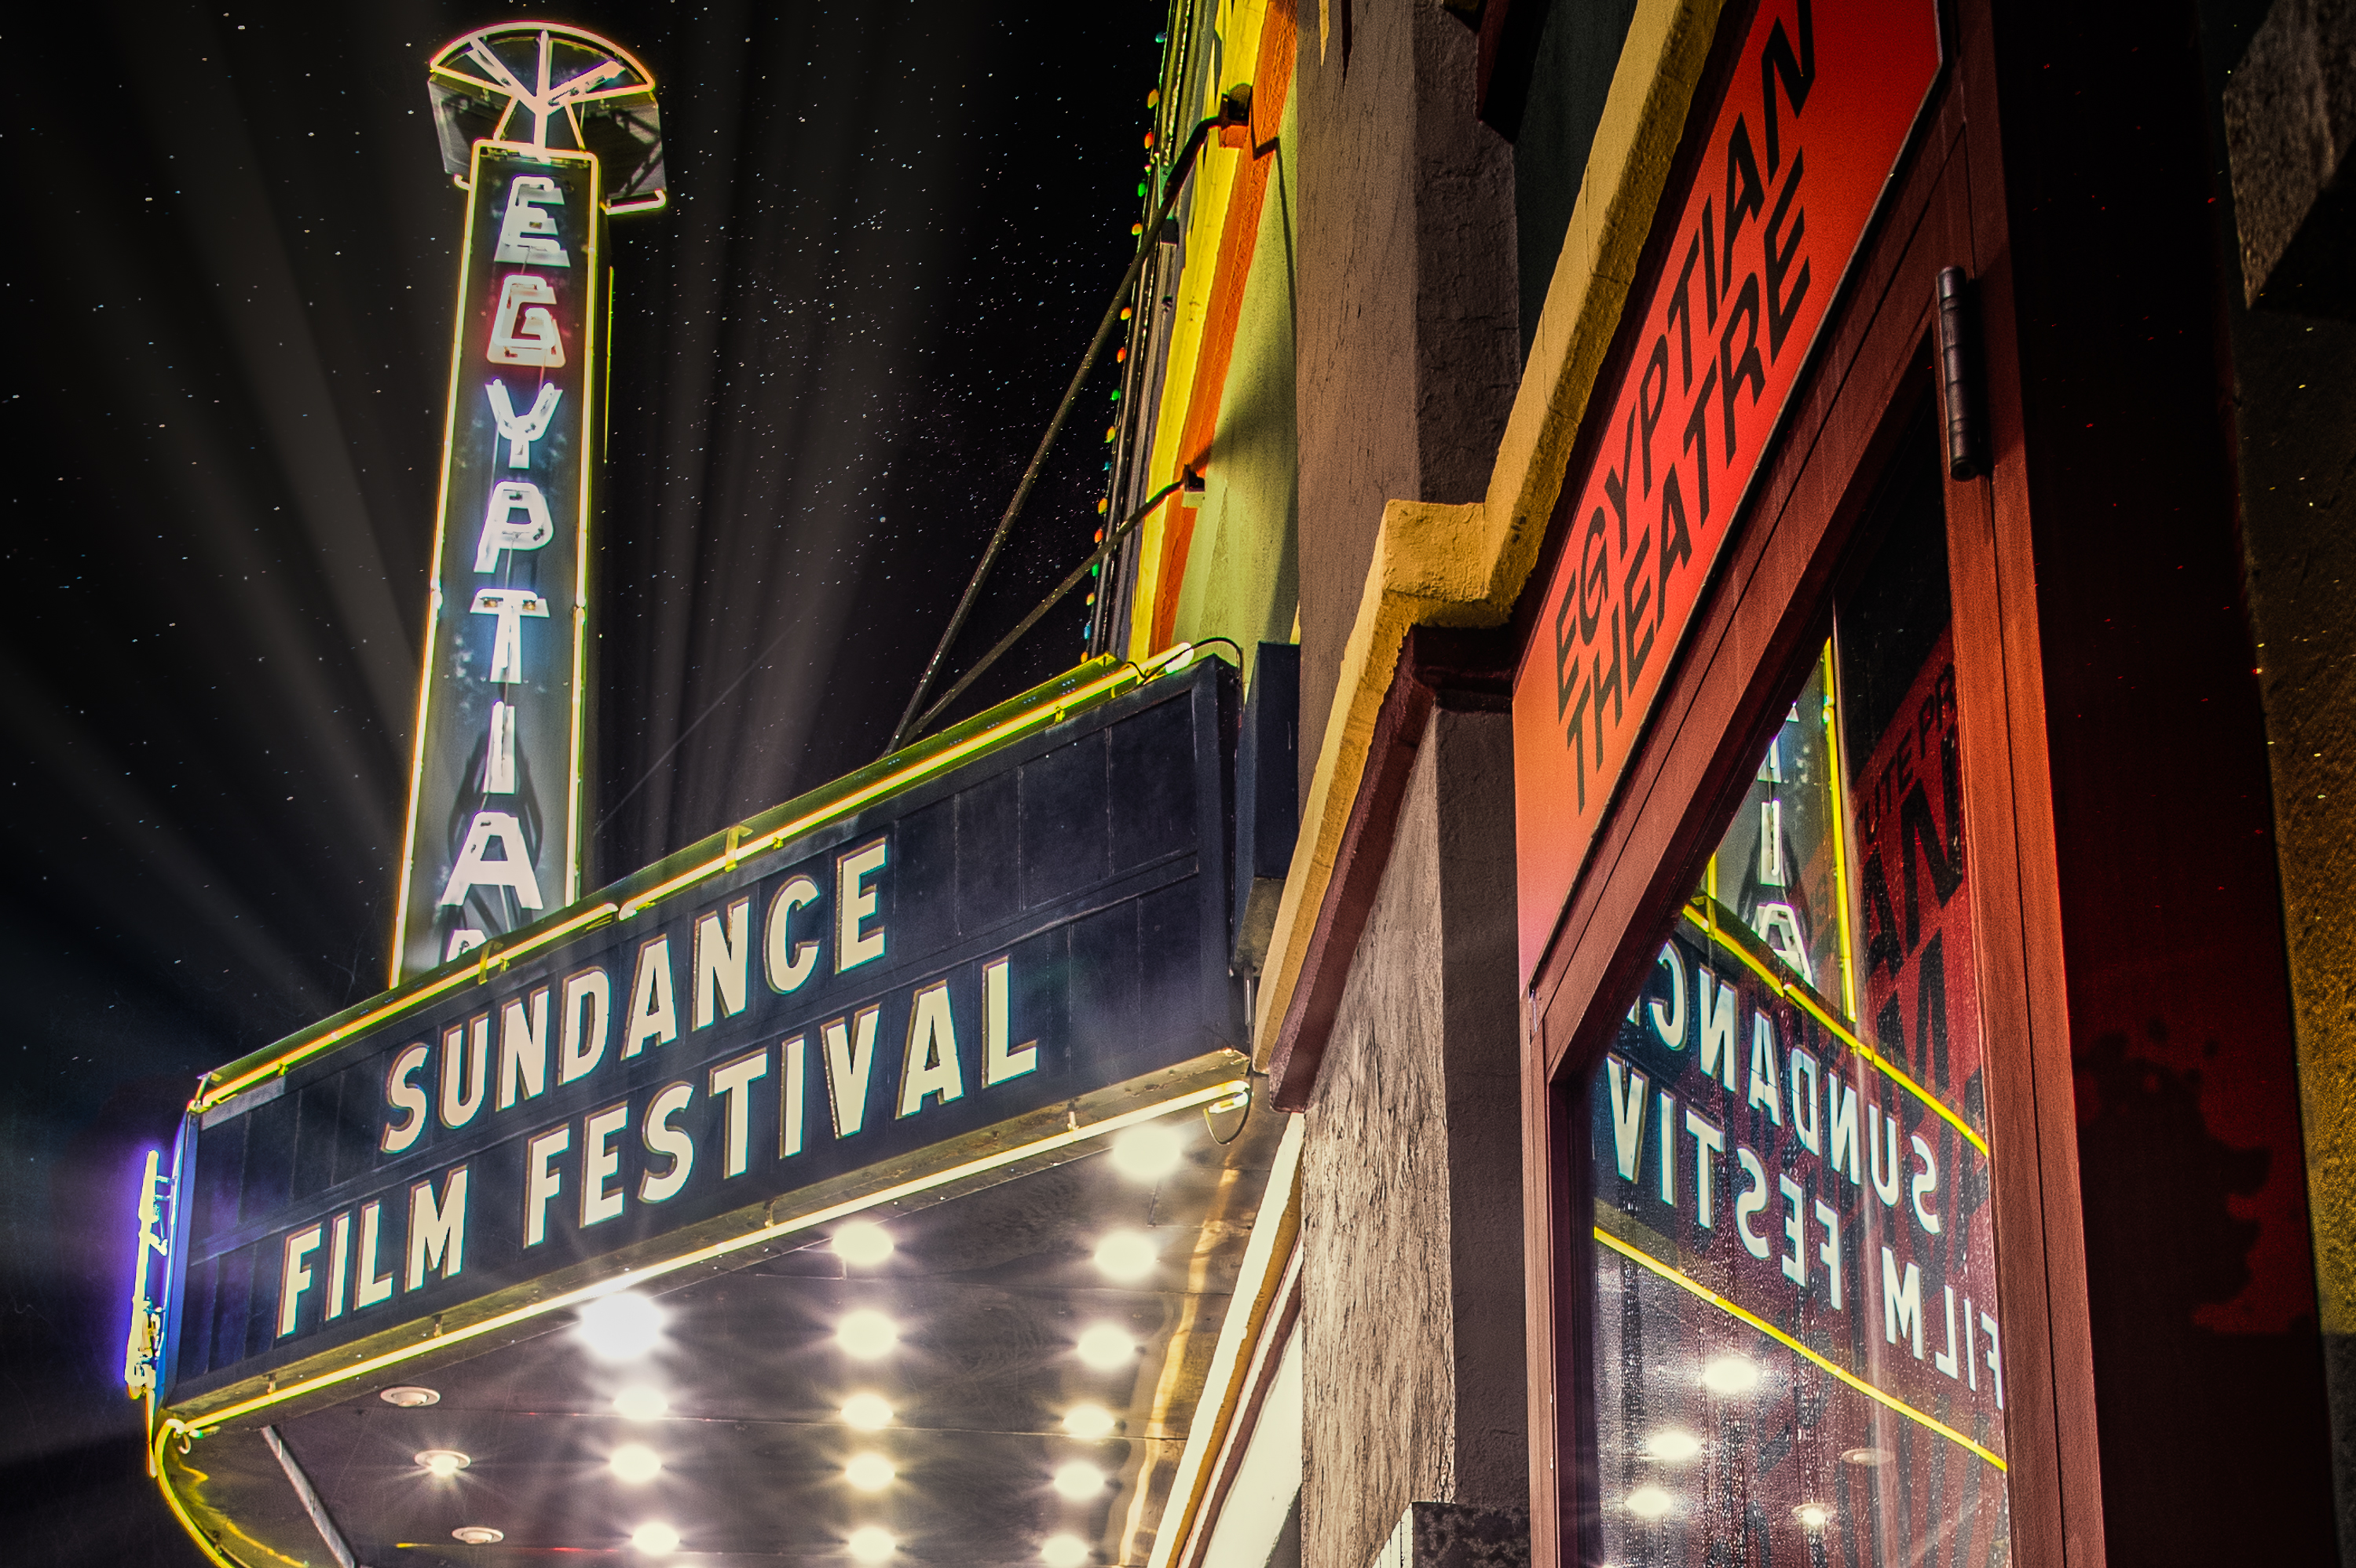 15 movies ready to take off at the 2020 Sundance Film Festival